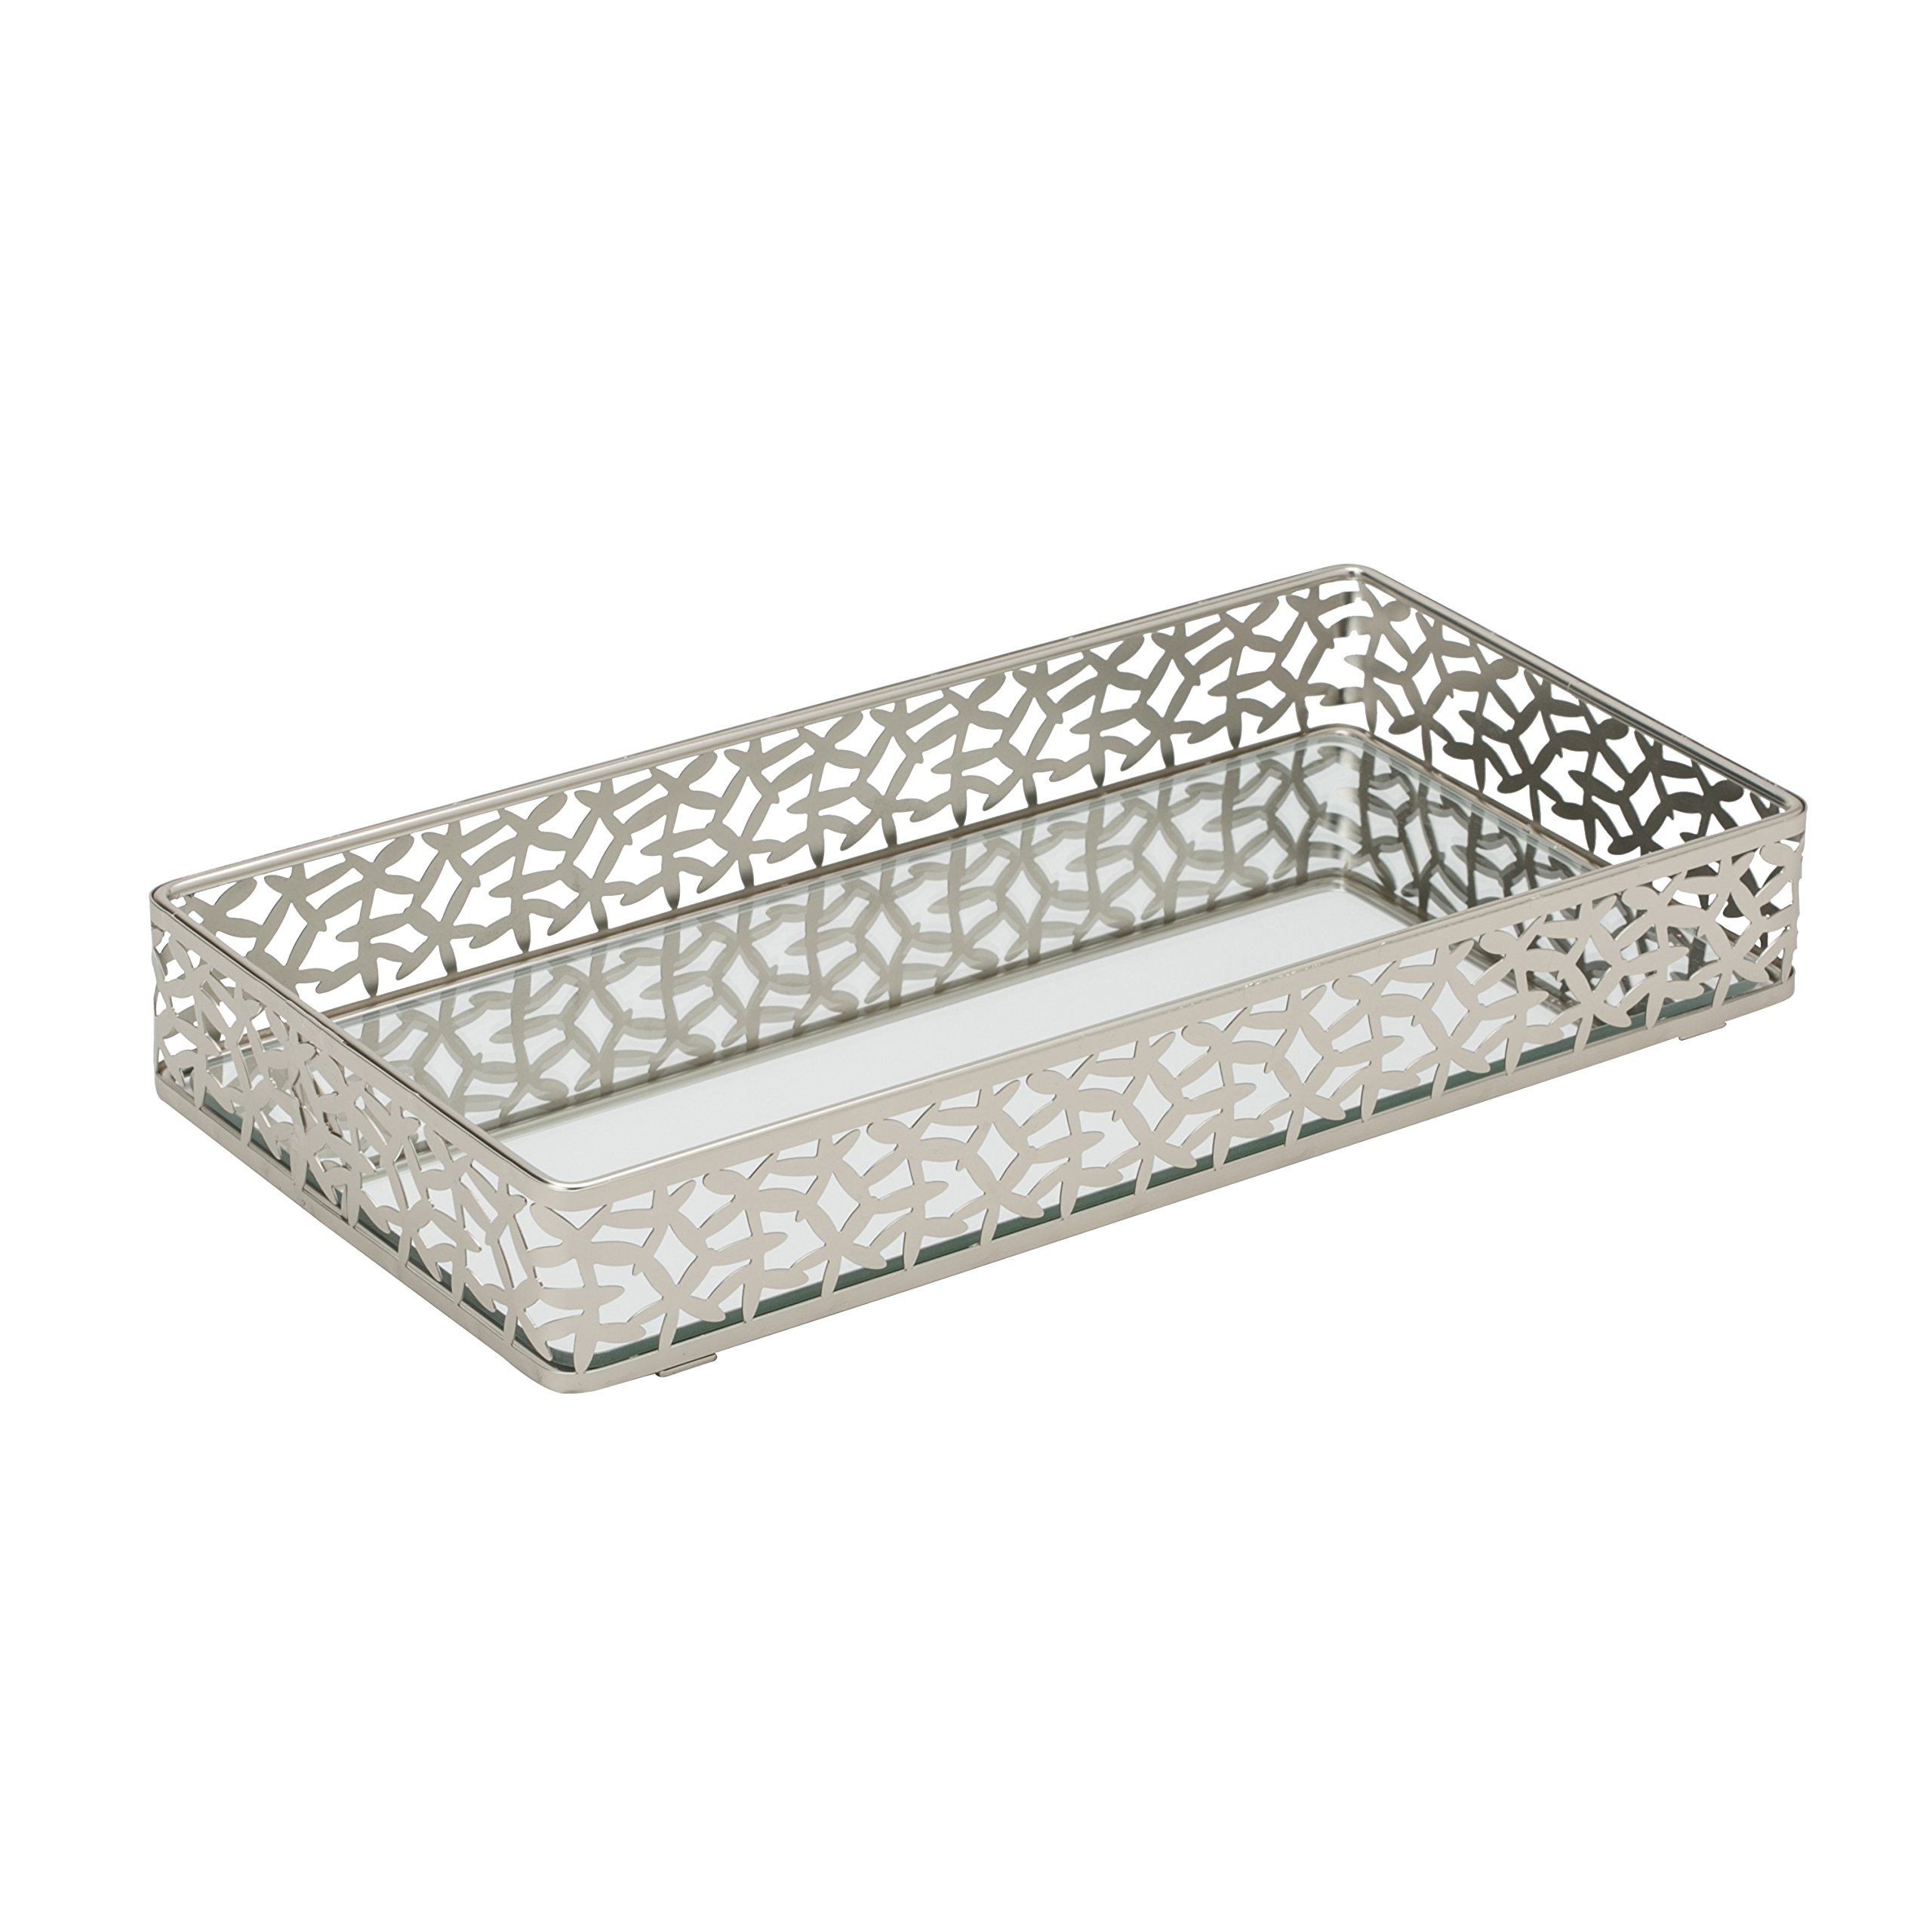 Home Details Mirrored Vanity Tray for Dresser, Perfume, Desk, Cosmetic & Jewelry Organizer, Decorative, Satin Silver by Home Details